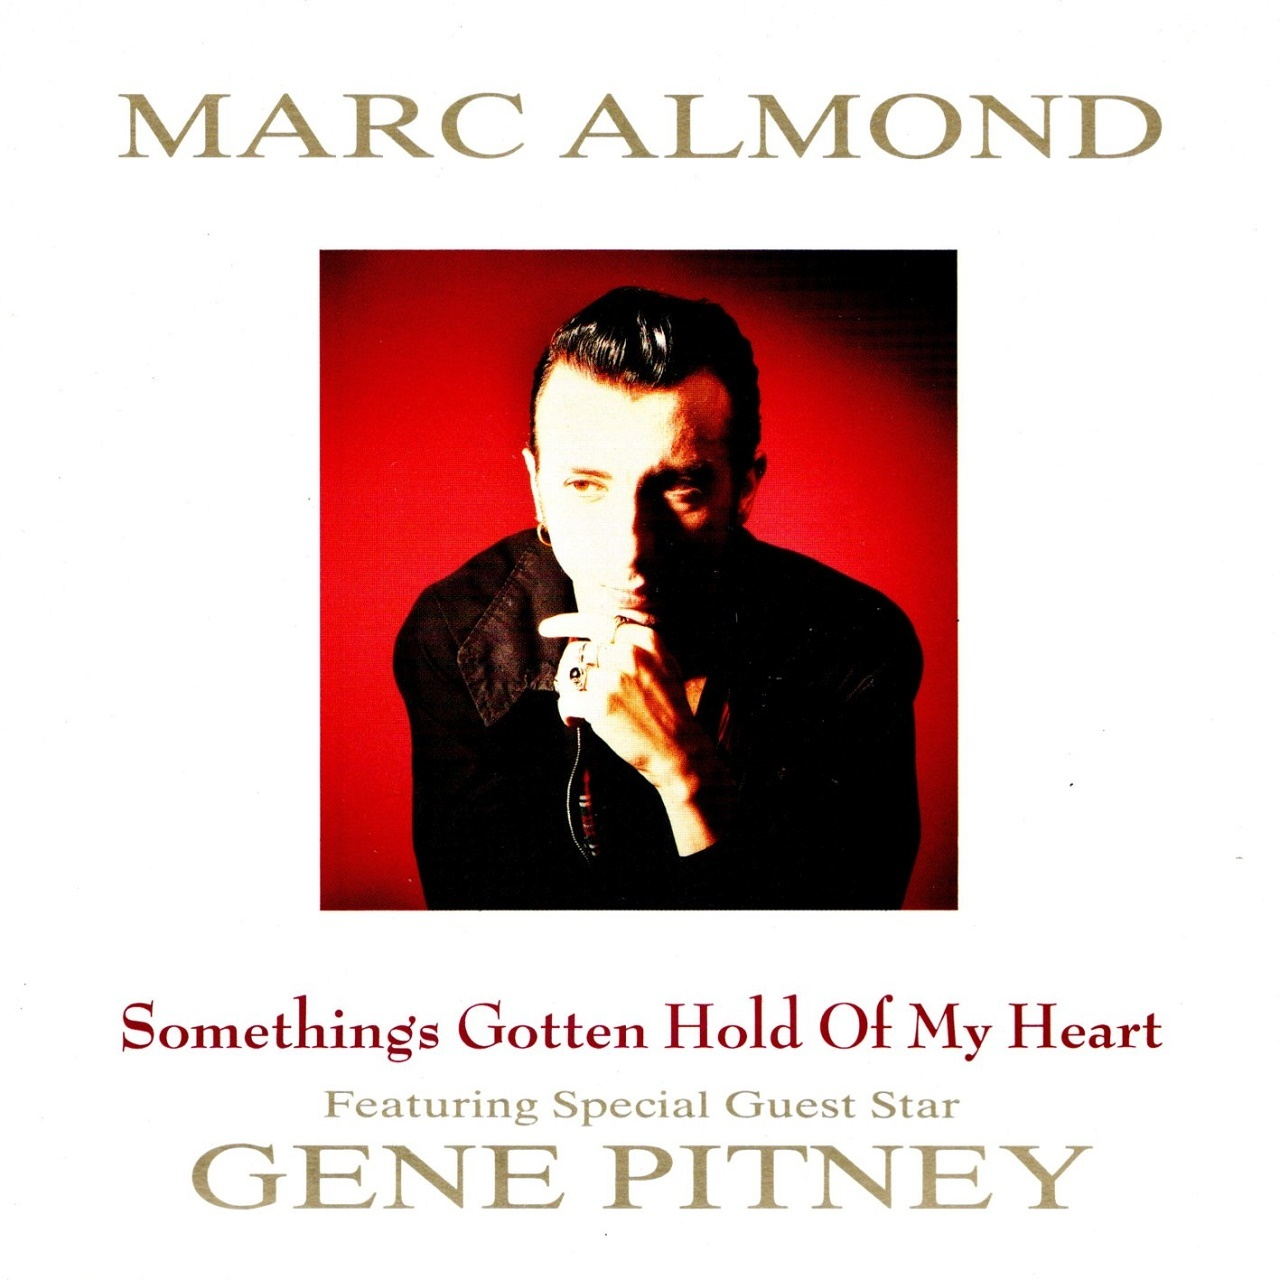 【7inch・英盤】Marc Almond (Featuring Special Guest Star Gene Pitney)   /  Something's Gotten Hold Of My Heart